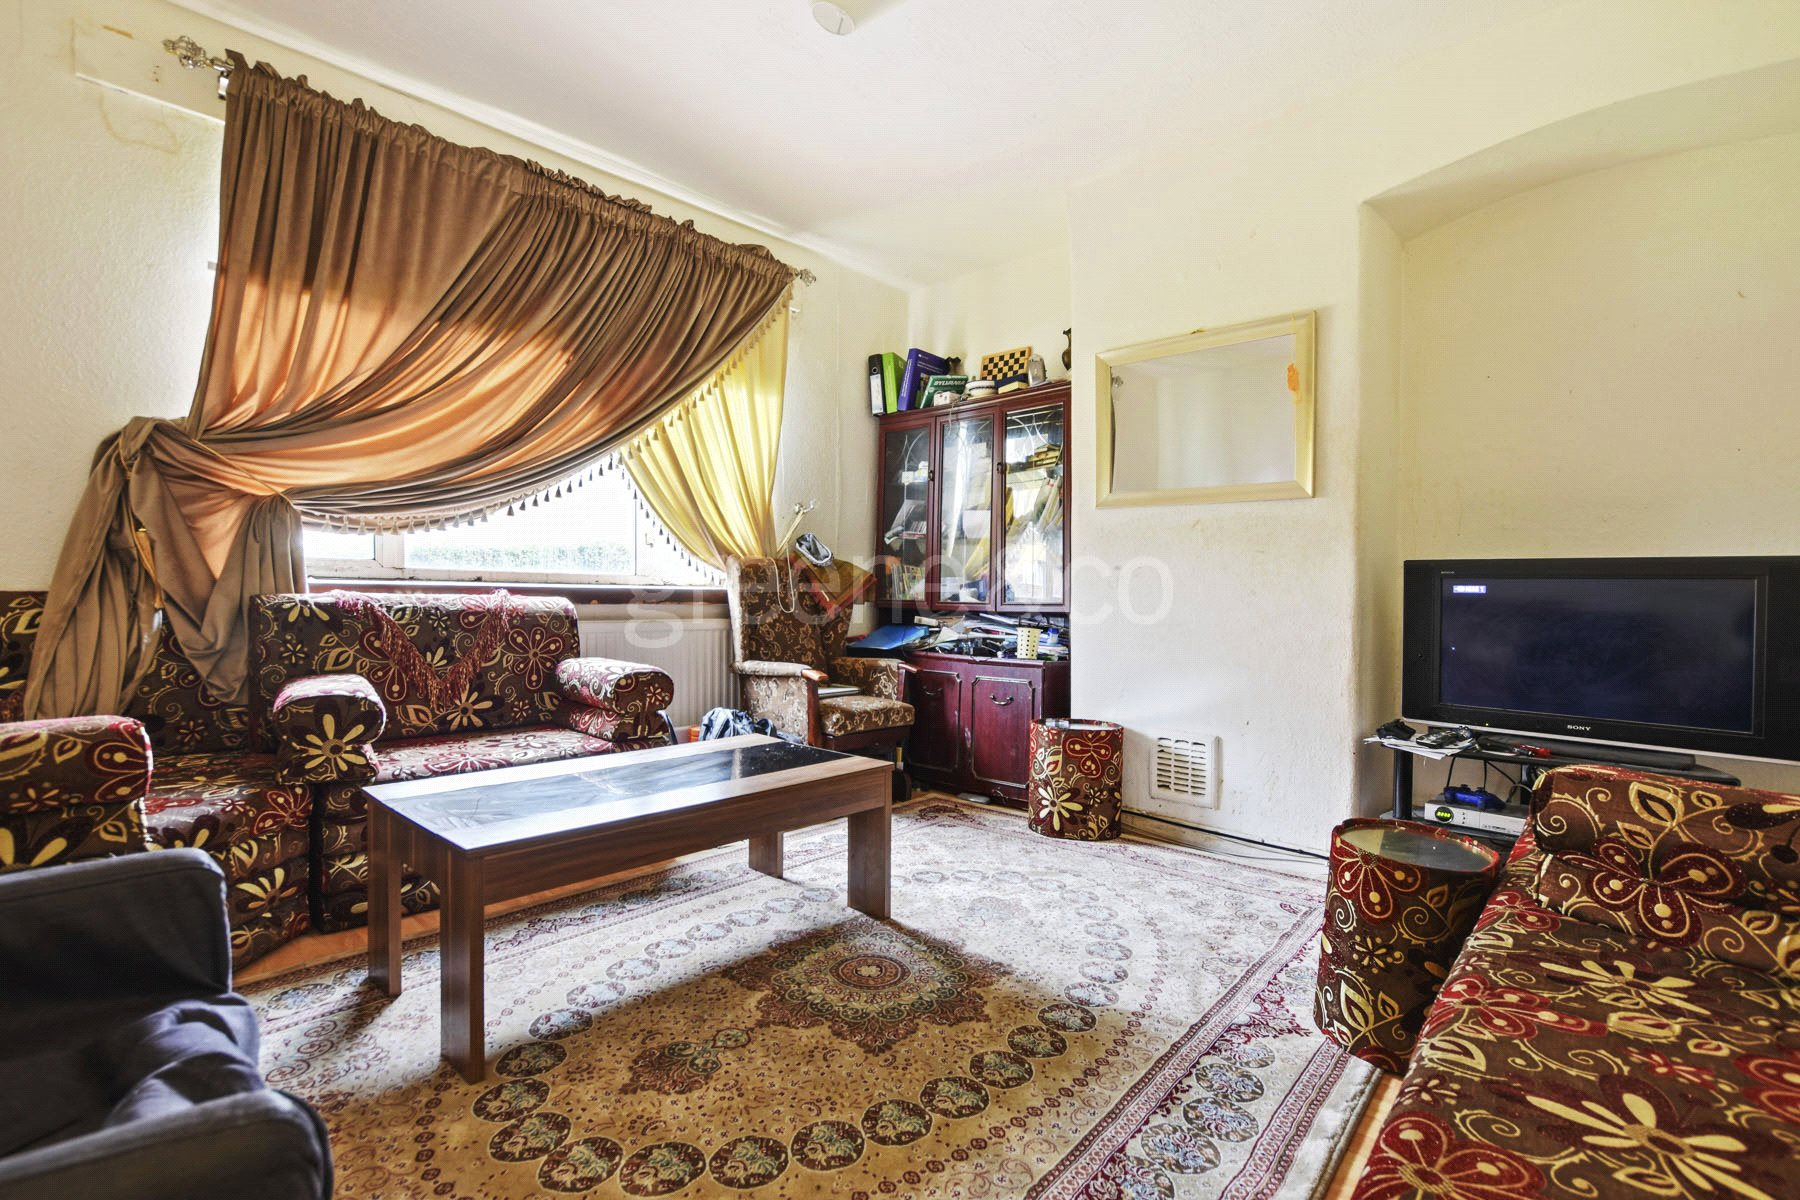 2 Bedrooms Flat for sale in Besant Road, Cricklewood, London, NW2